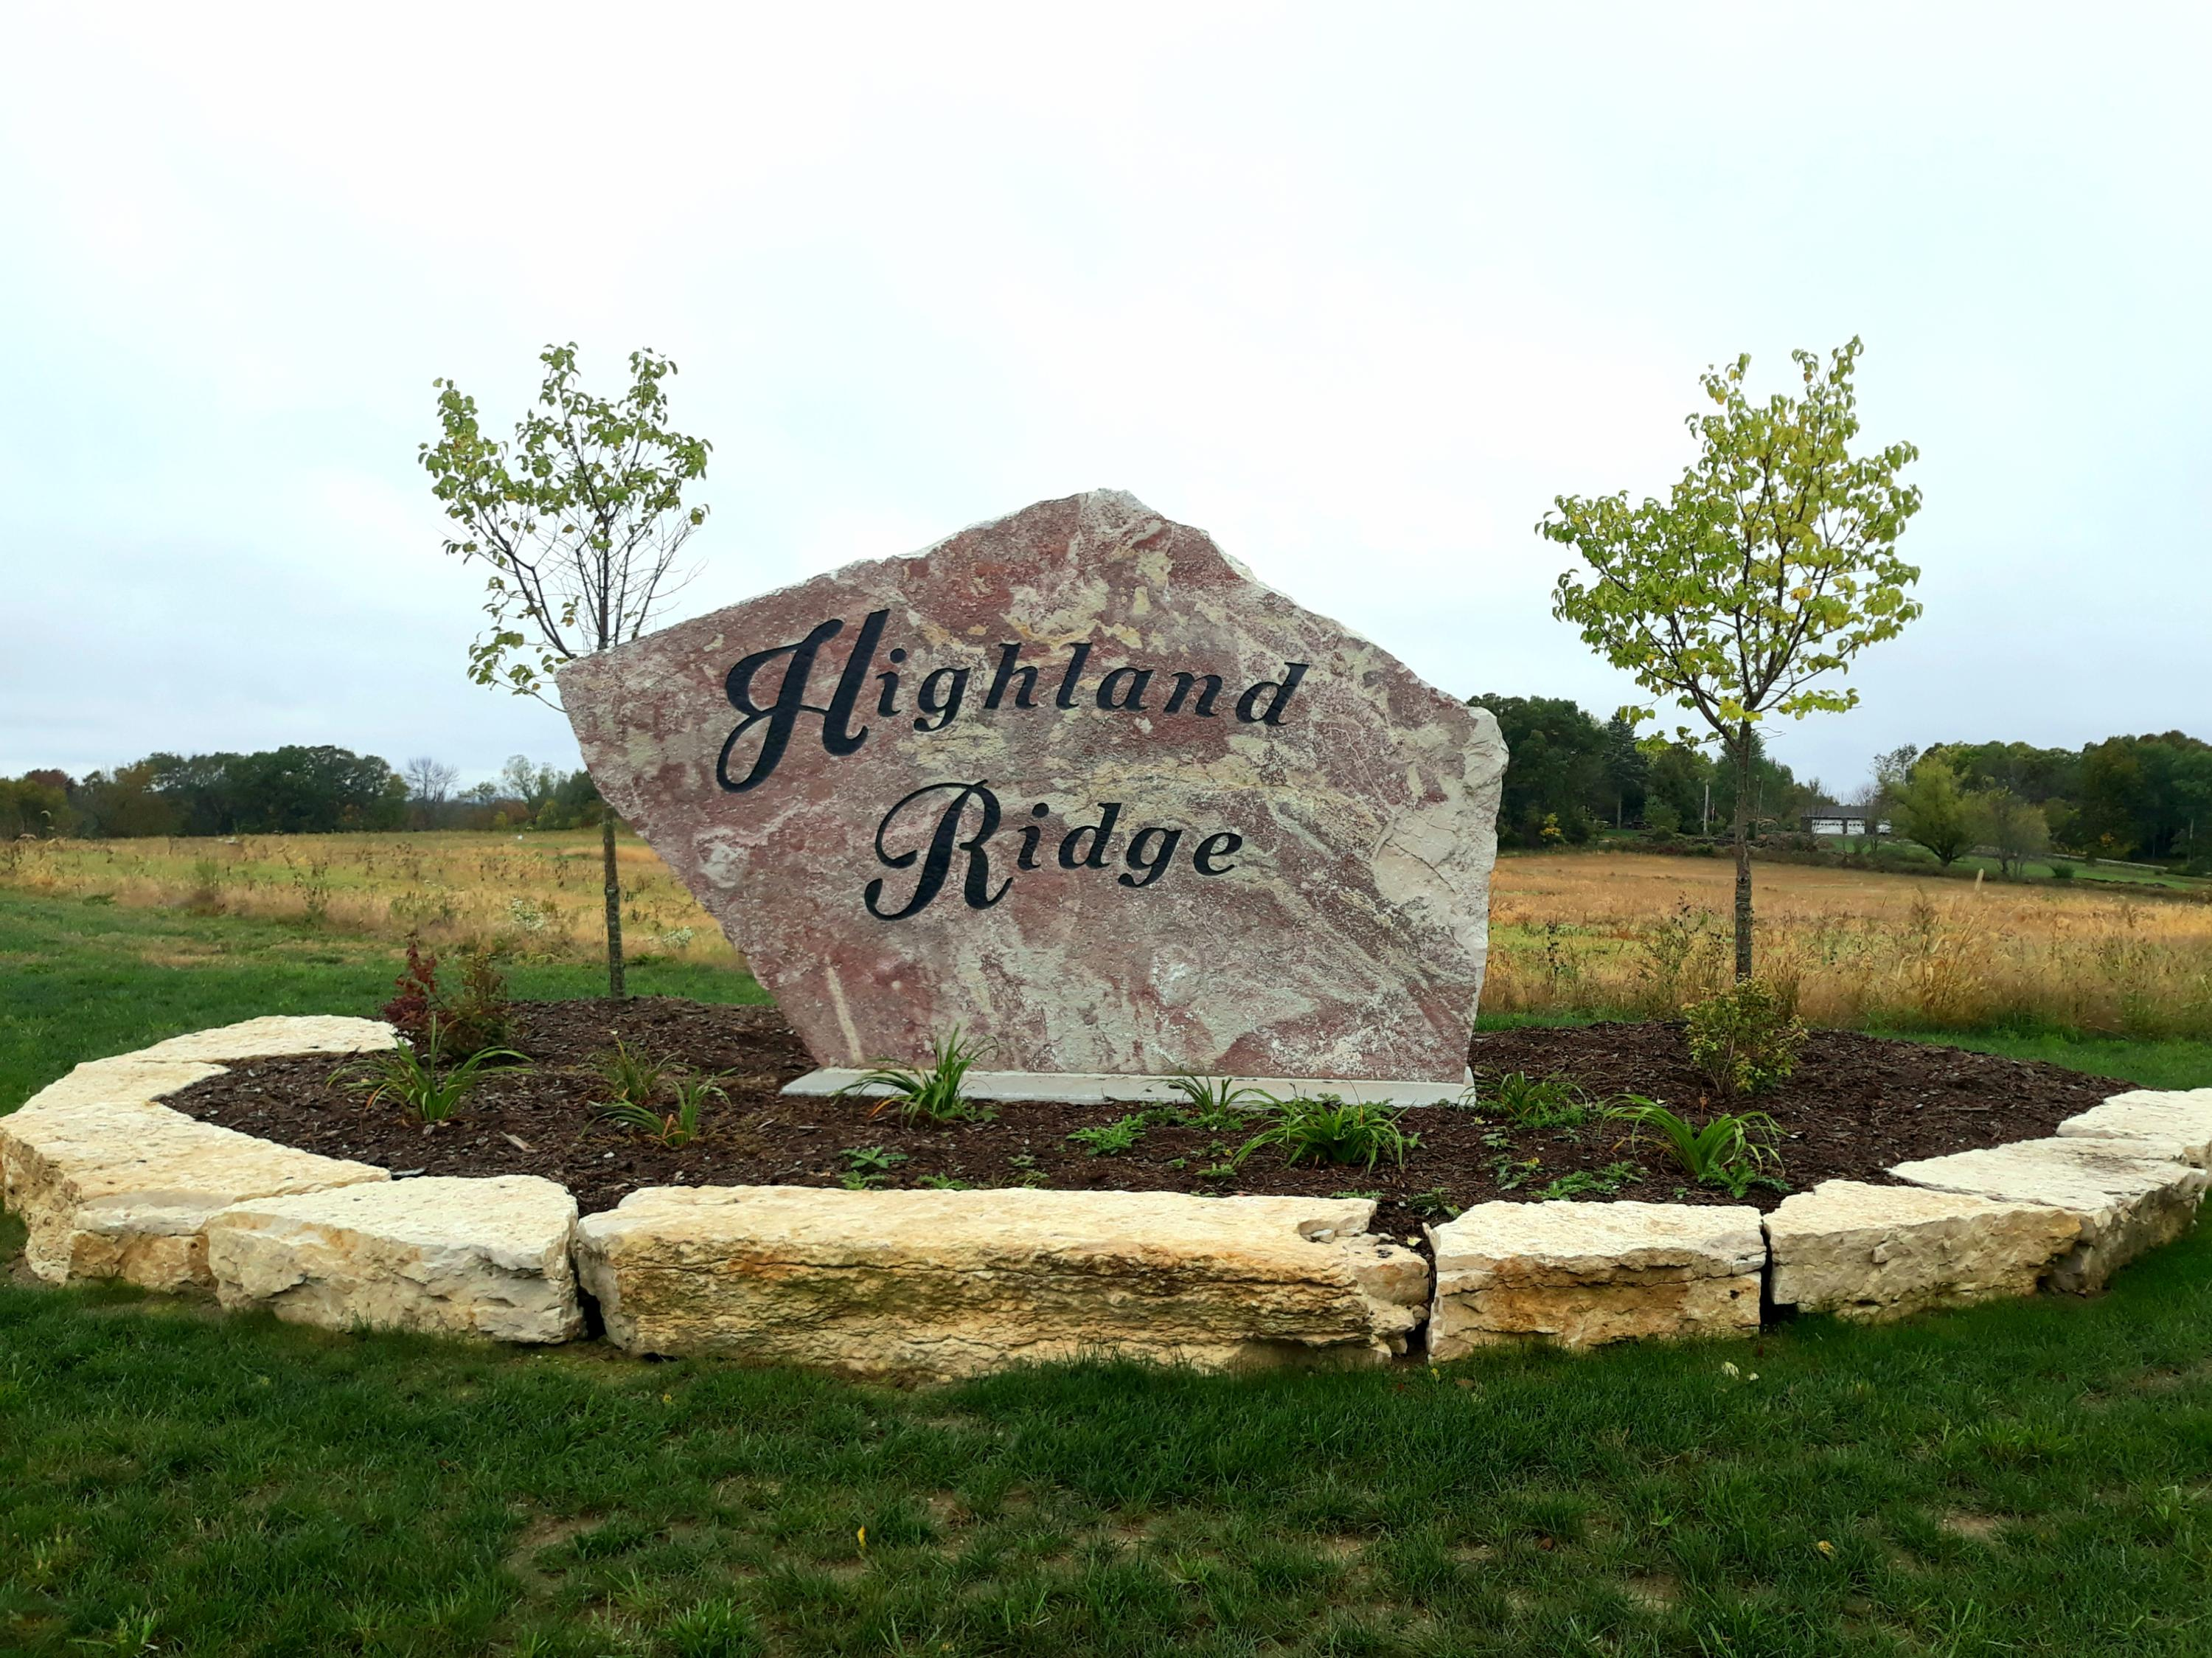 Highland Ridge sign